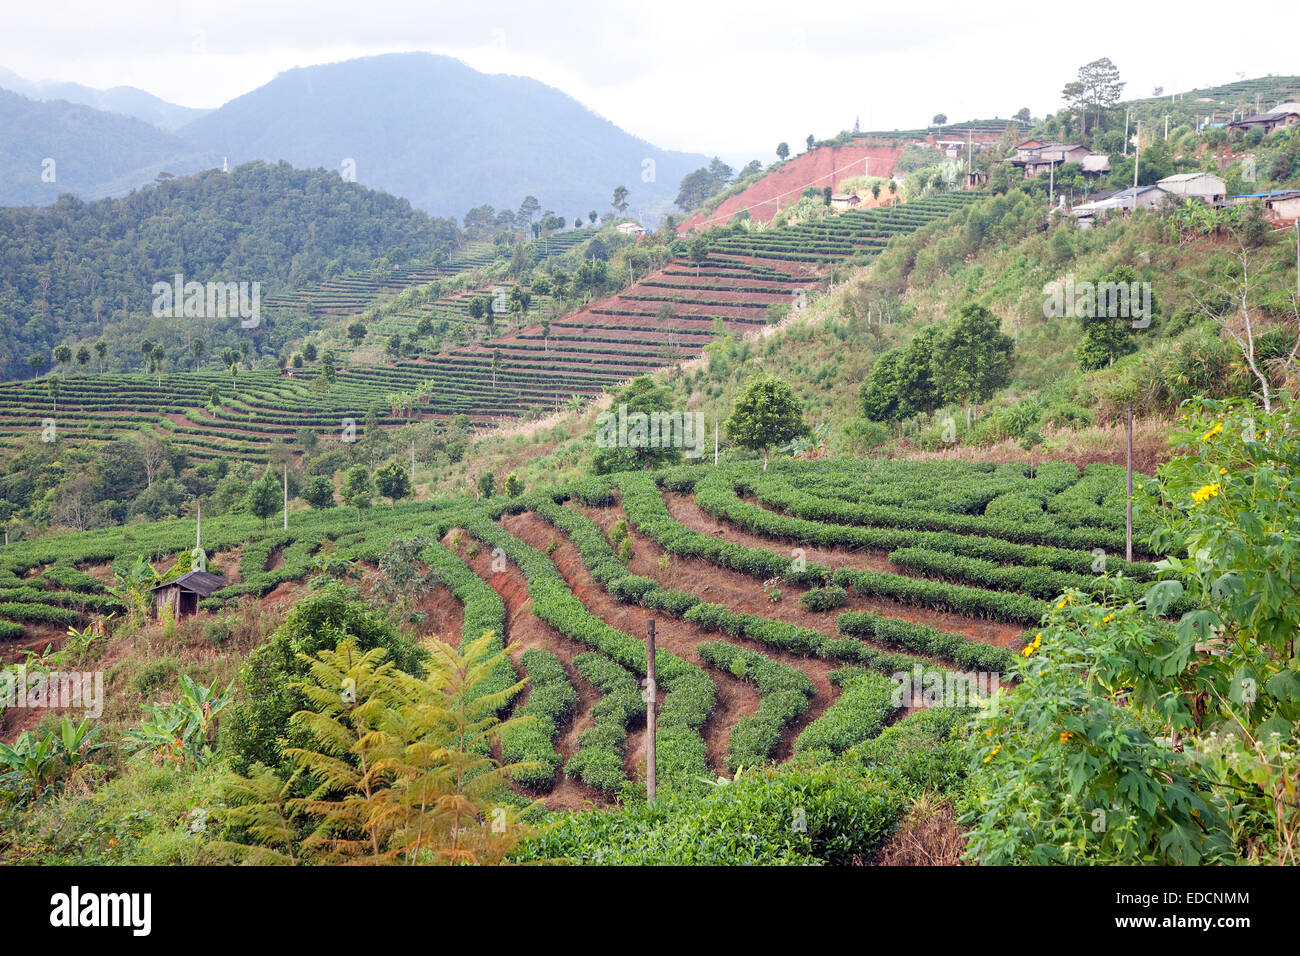 Terraced tea plantation on hillside in the mountains of the Yunnan province, China - Stock Image